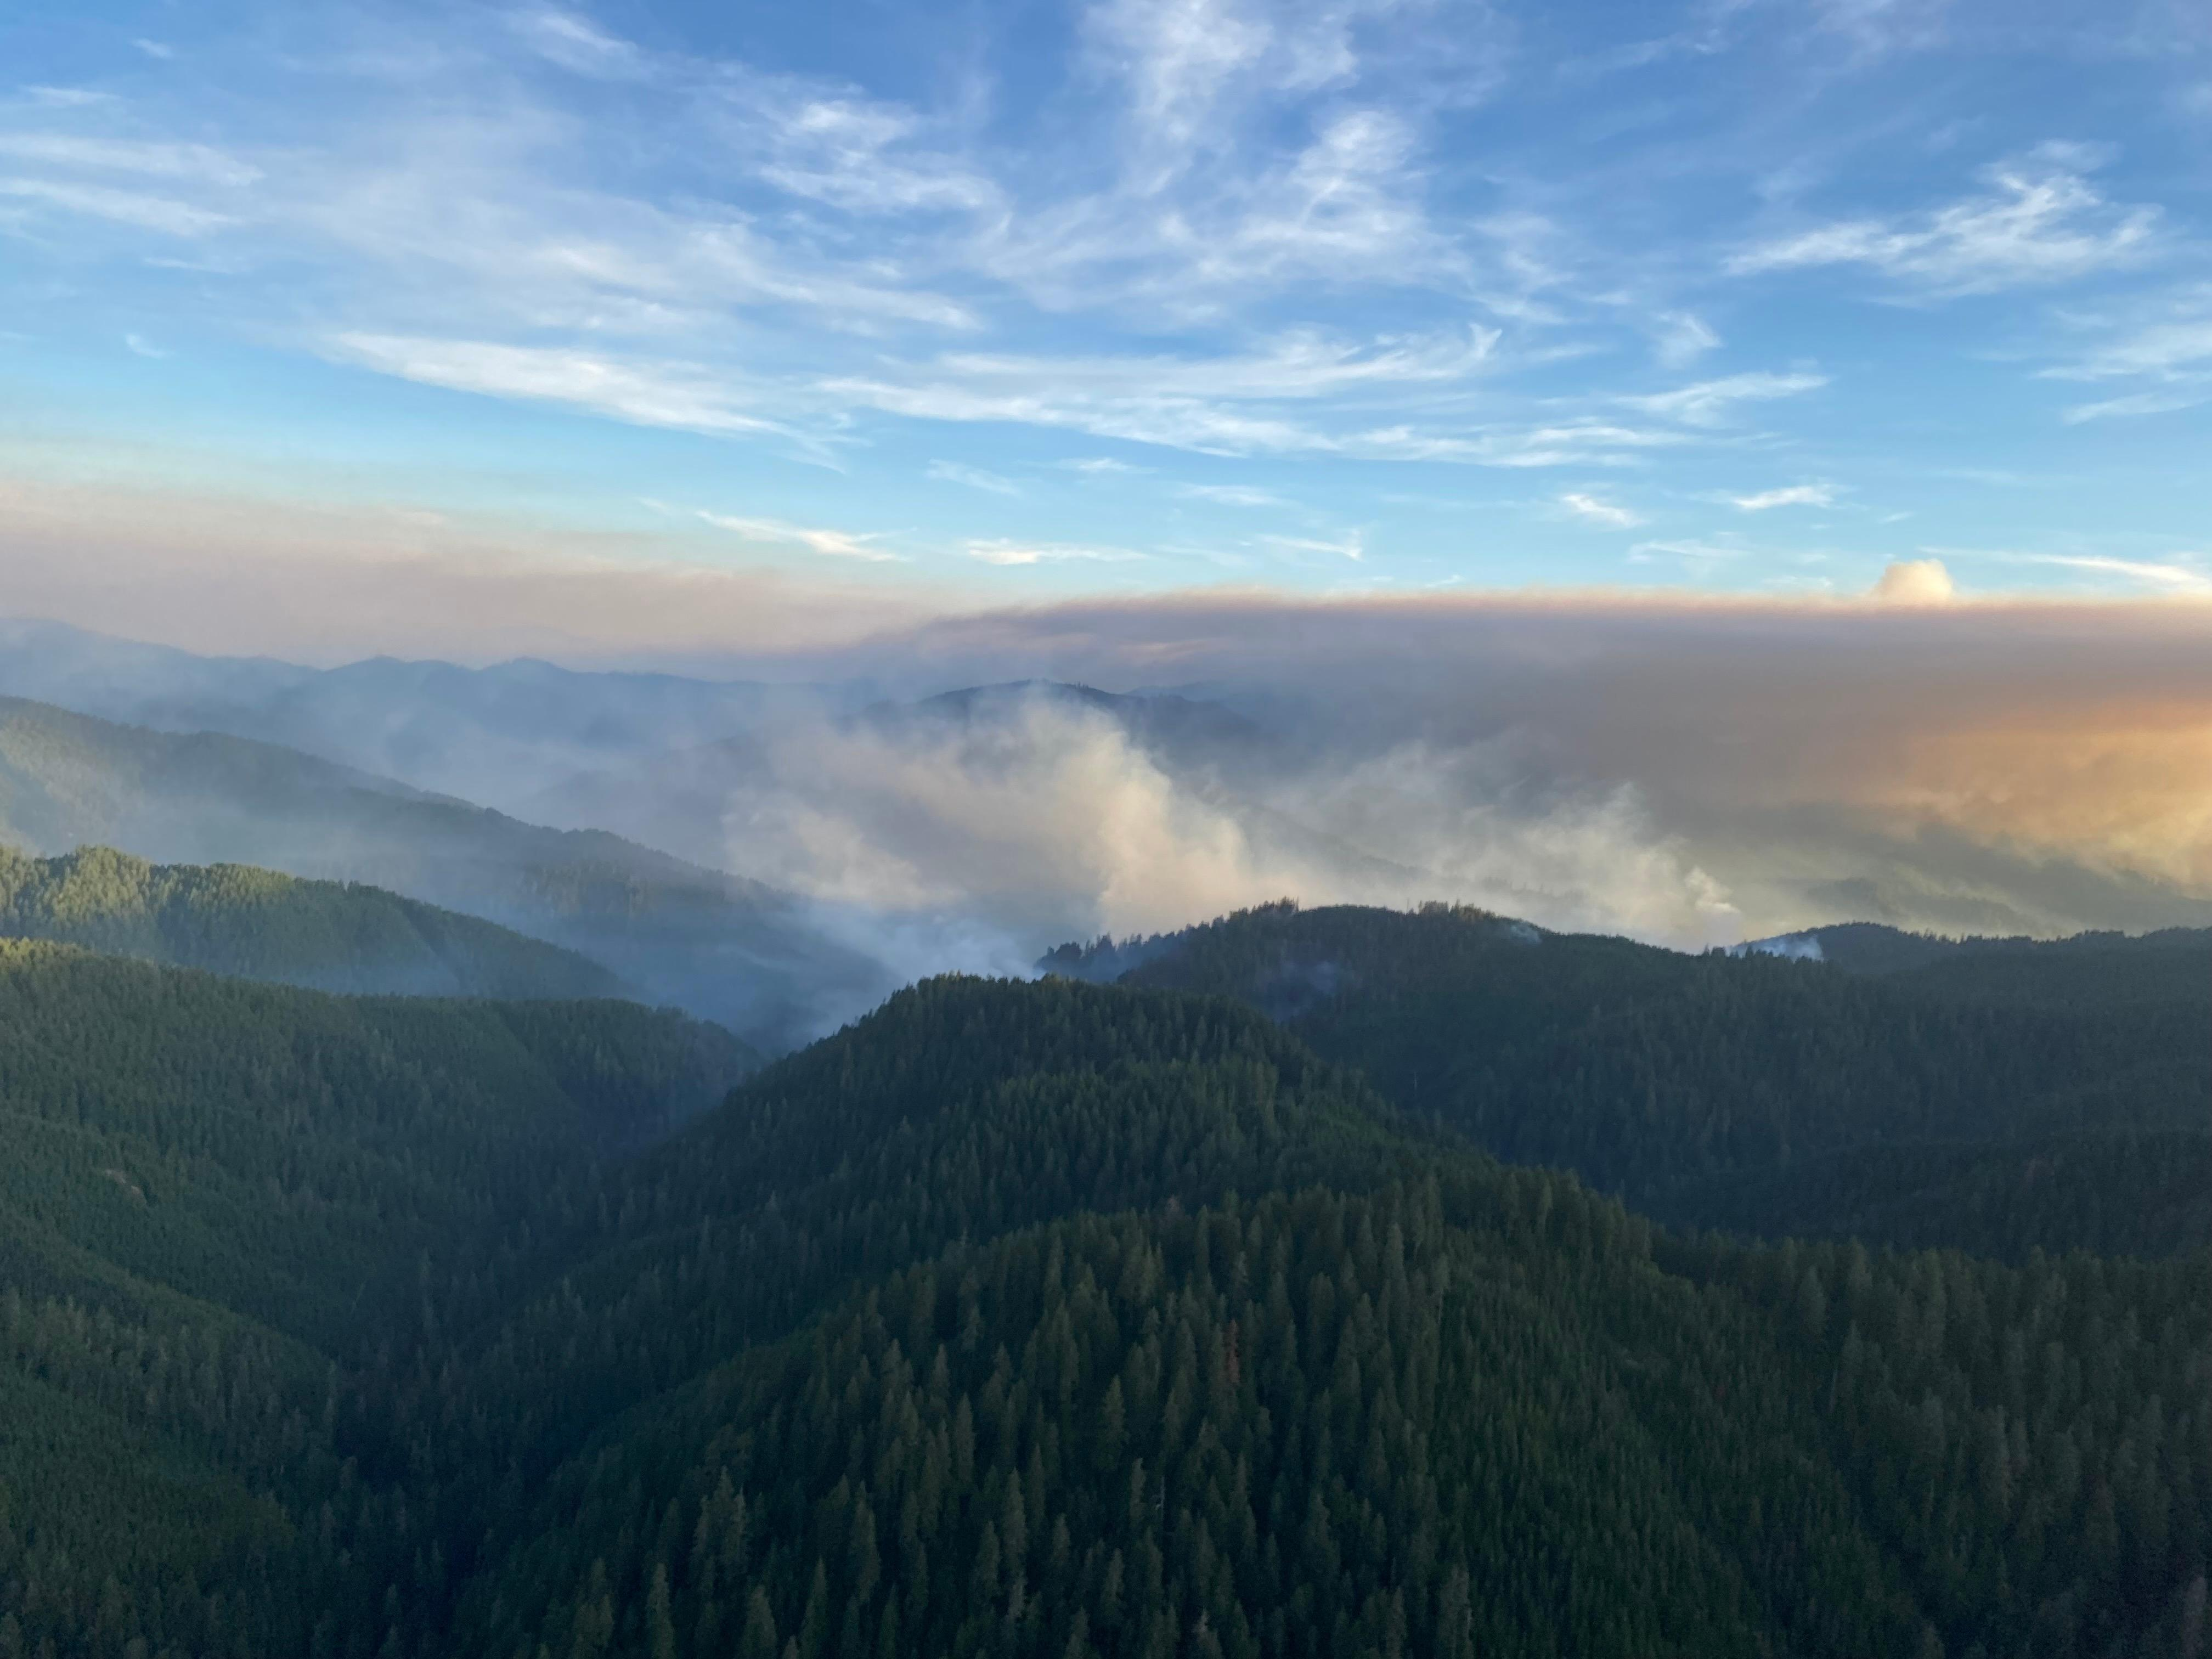 Blue sky visible above pink tinted smoke from forest fires. Below the smoke green forested mountains are visible.